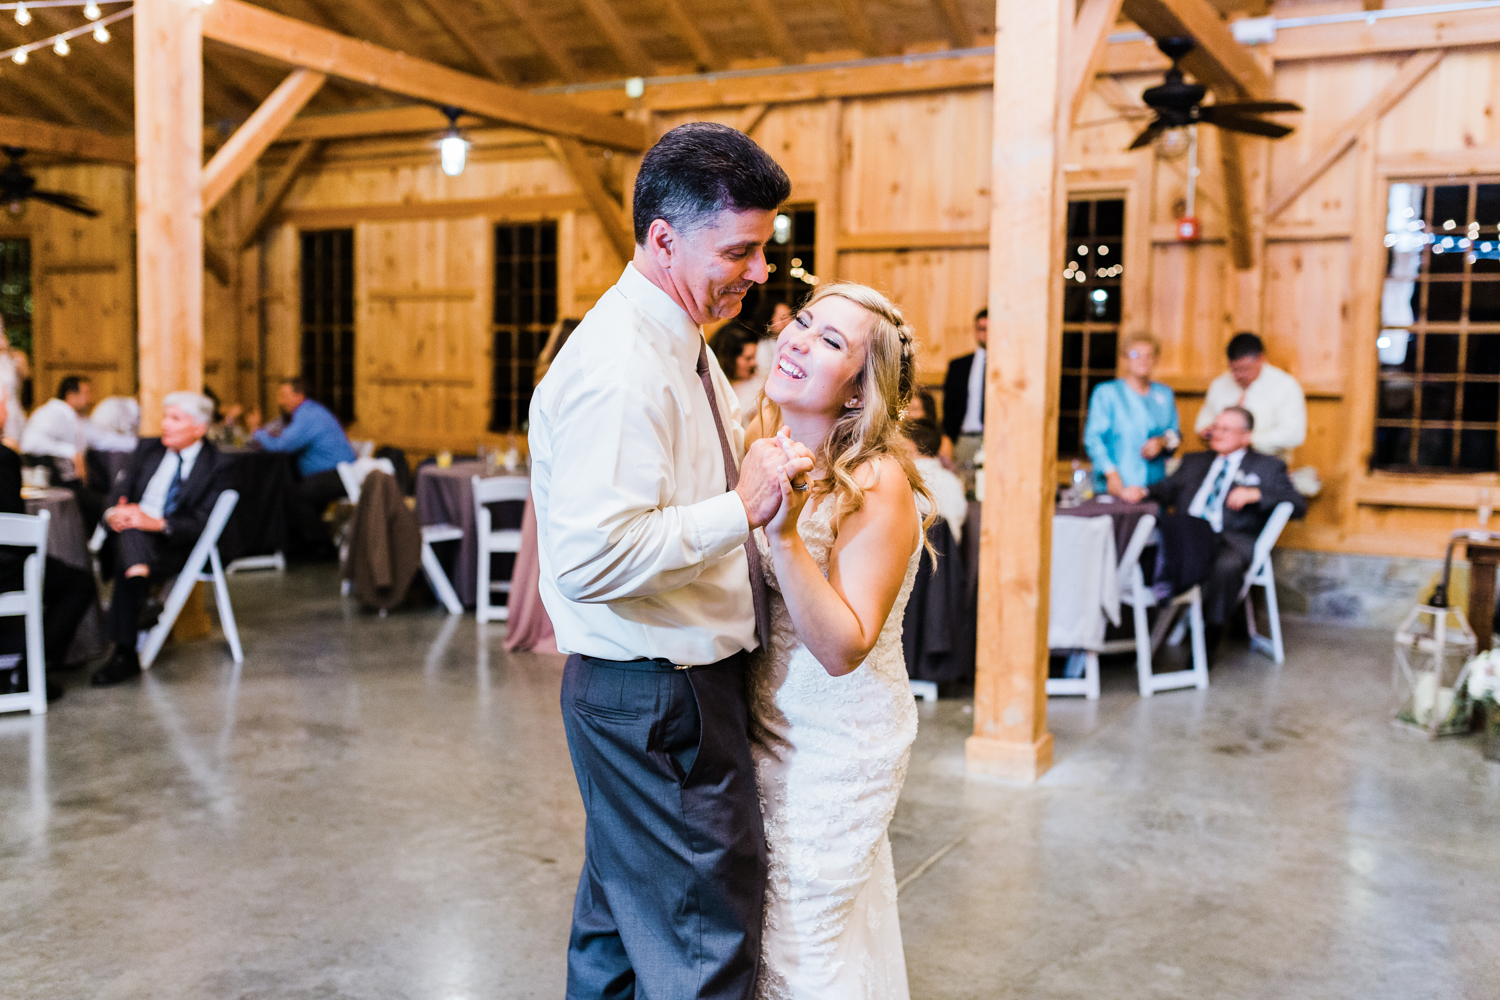 Father and Bride share first dance together - Pond View Farm